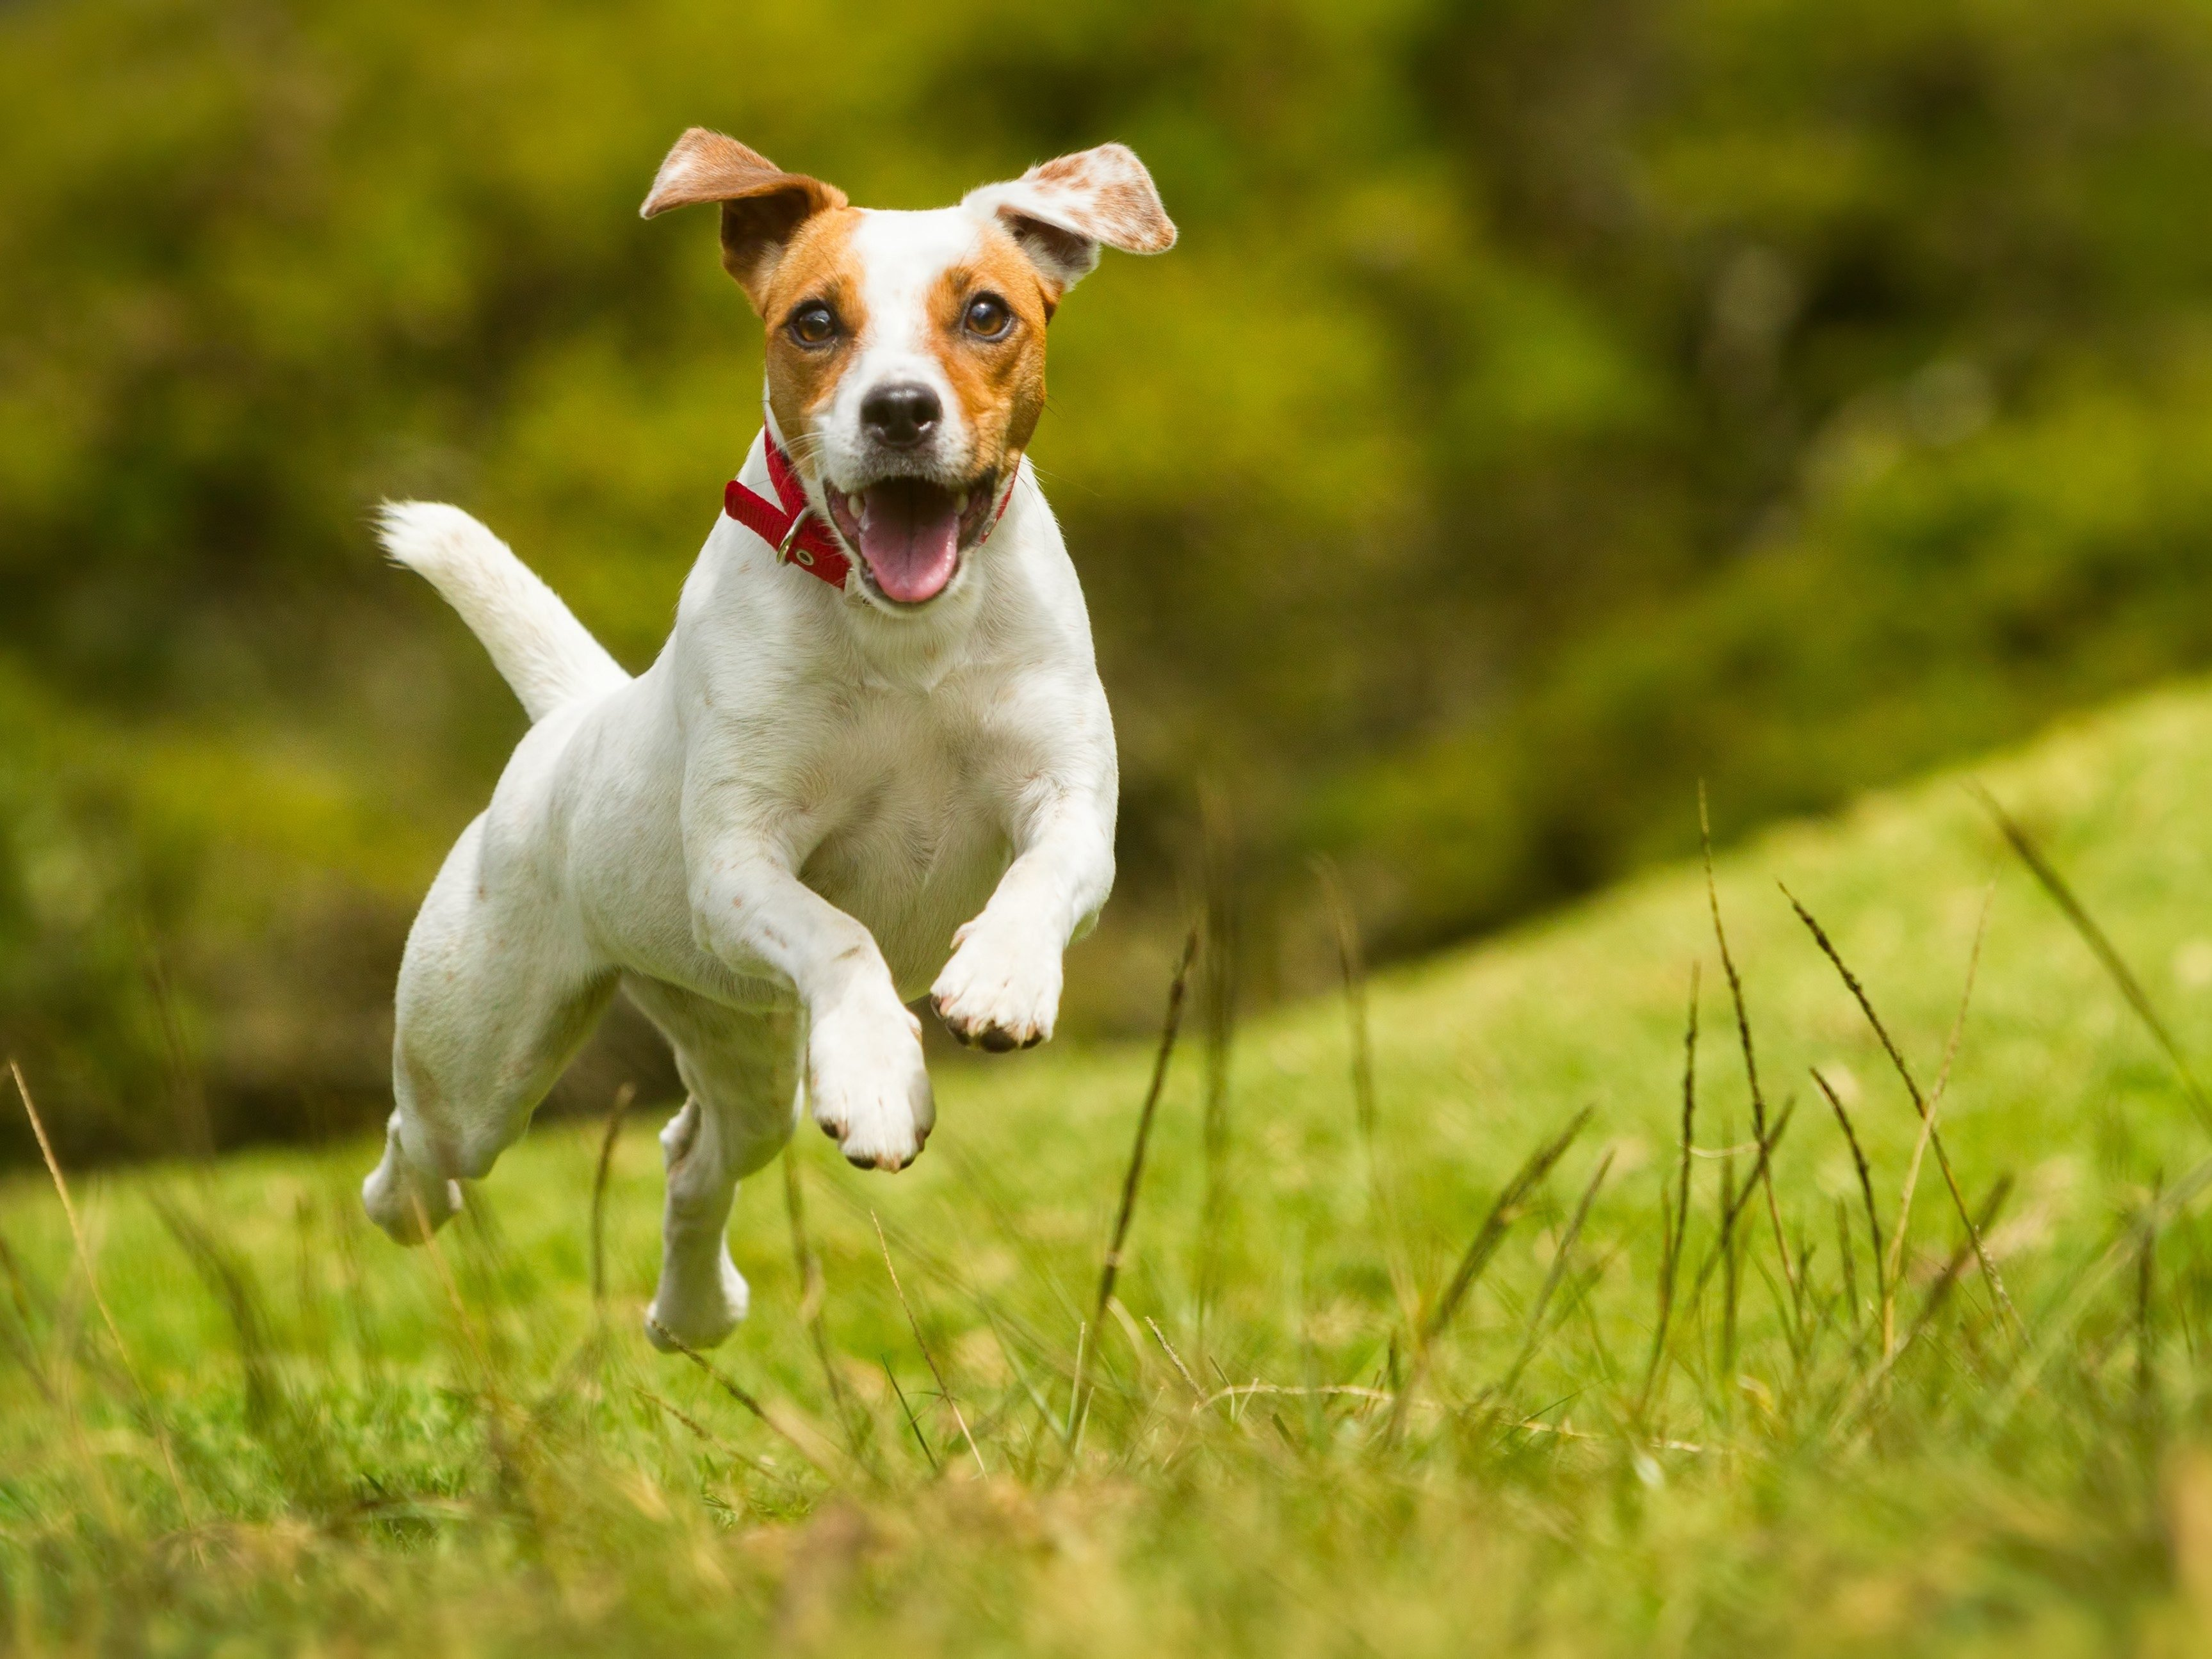 19. Pets can chase away stress.